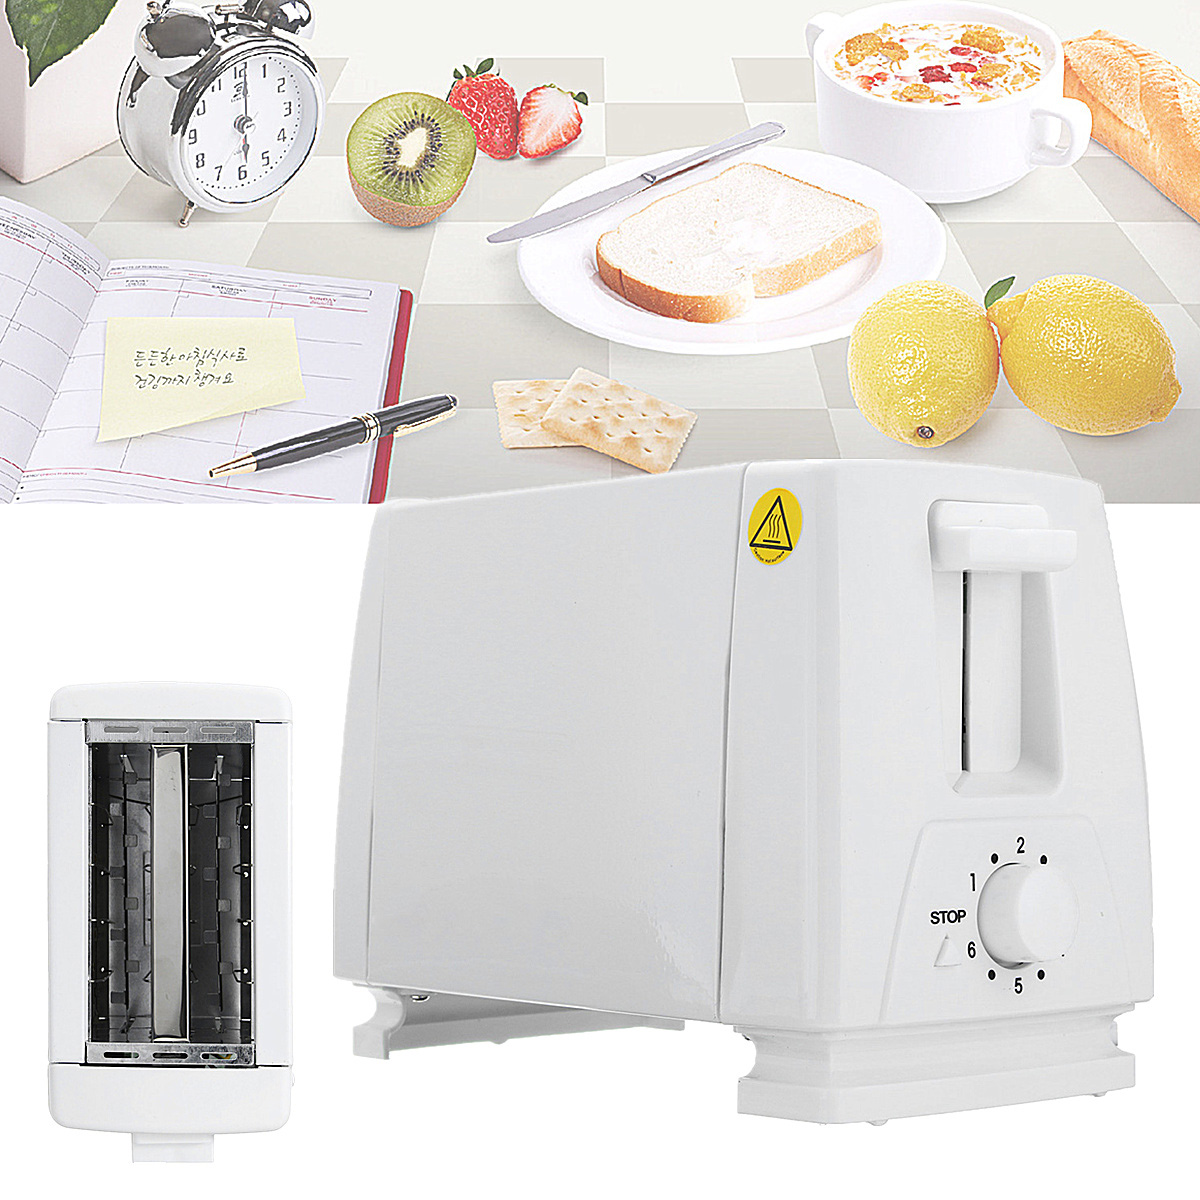 750W Stainless Steel 2 Slice Toaster Mini Automatic Electronic Bread Toaster Household Breakfast Baking Bread Machine cukyi toaster italian technology breakfast machine household automatic single double sides baking stainless steel liner retro